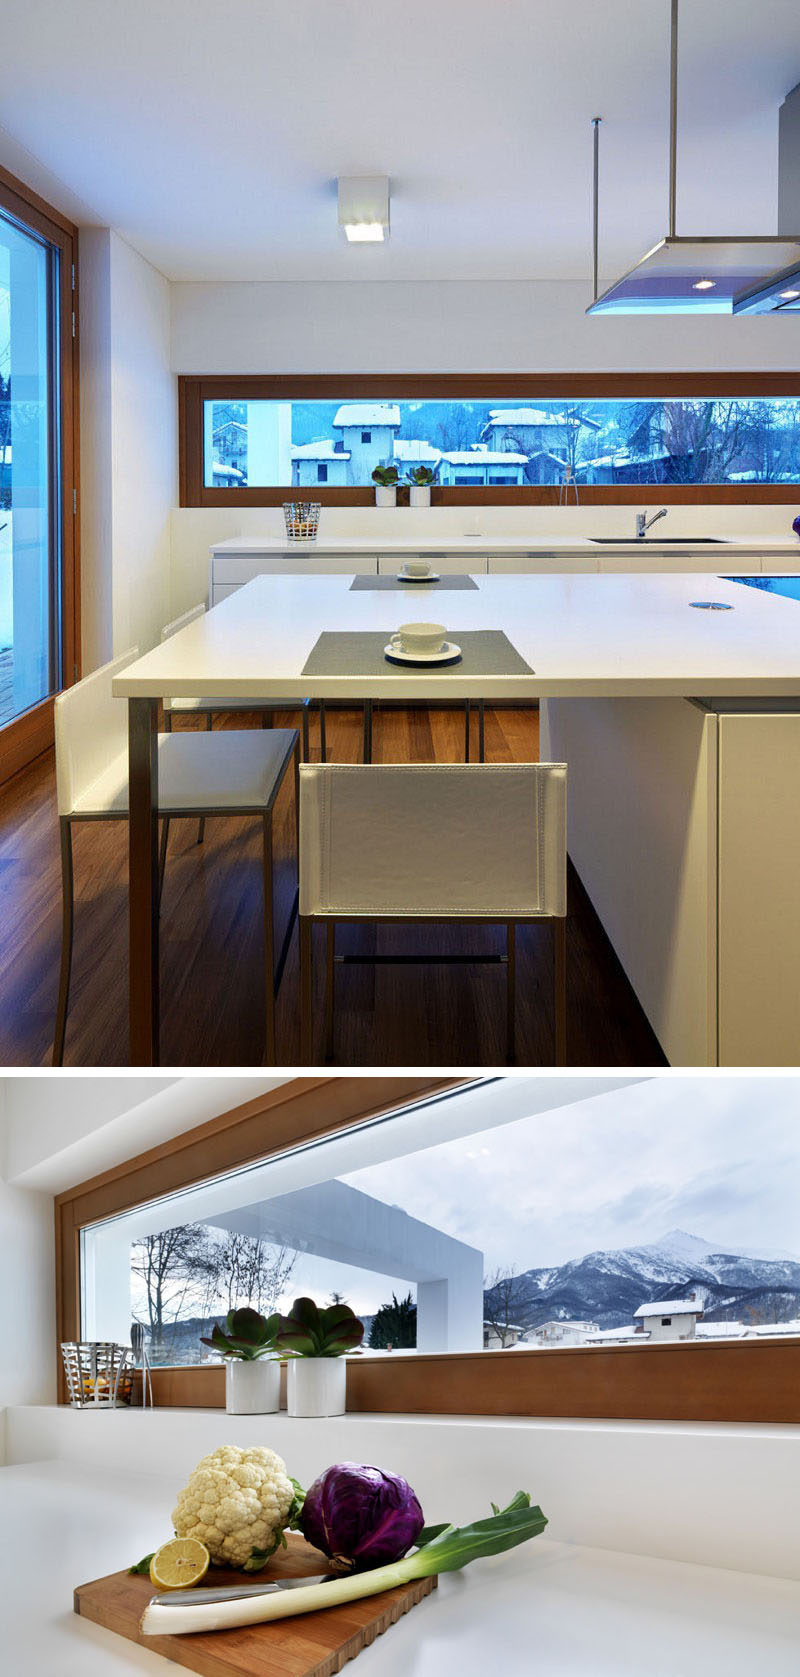 12 Inspirational Examples Of Letterbox Windows In Kitchens // This letterbox window sits just above the height of the counter and offers beautiful views of the mountains off in the distance.